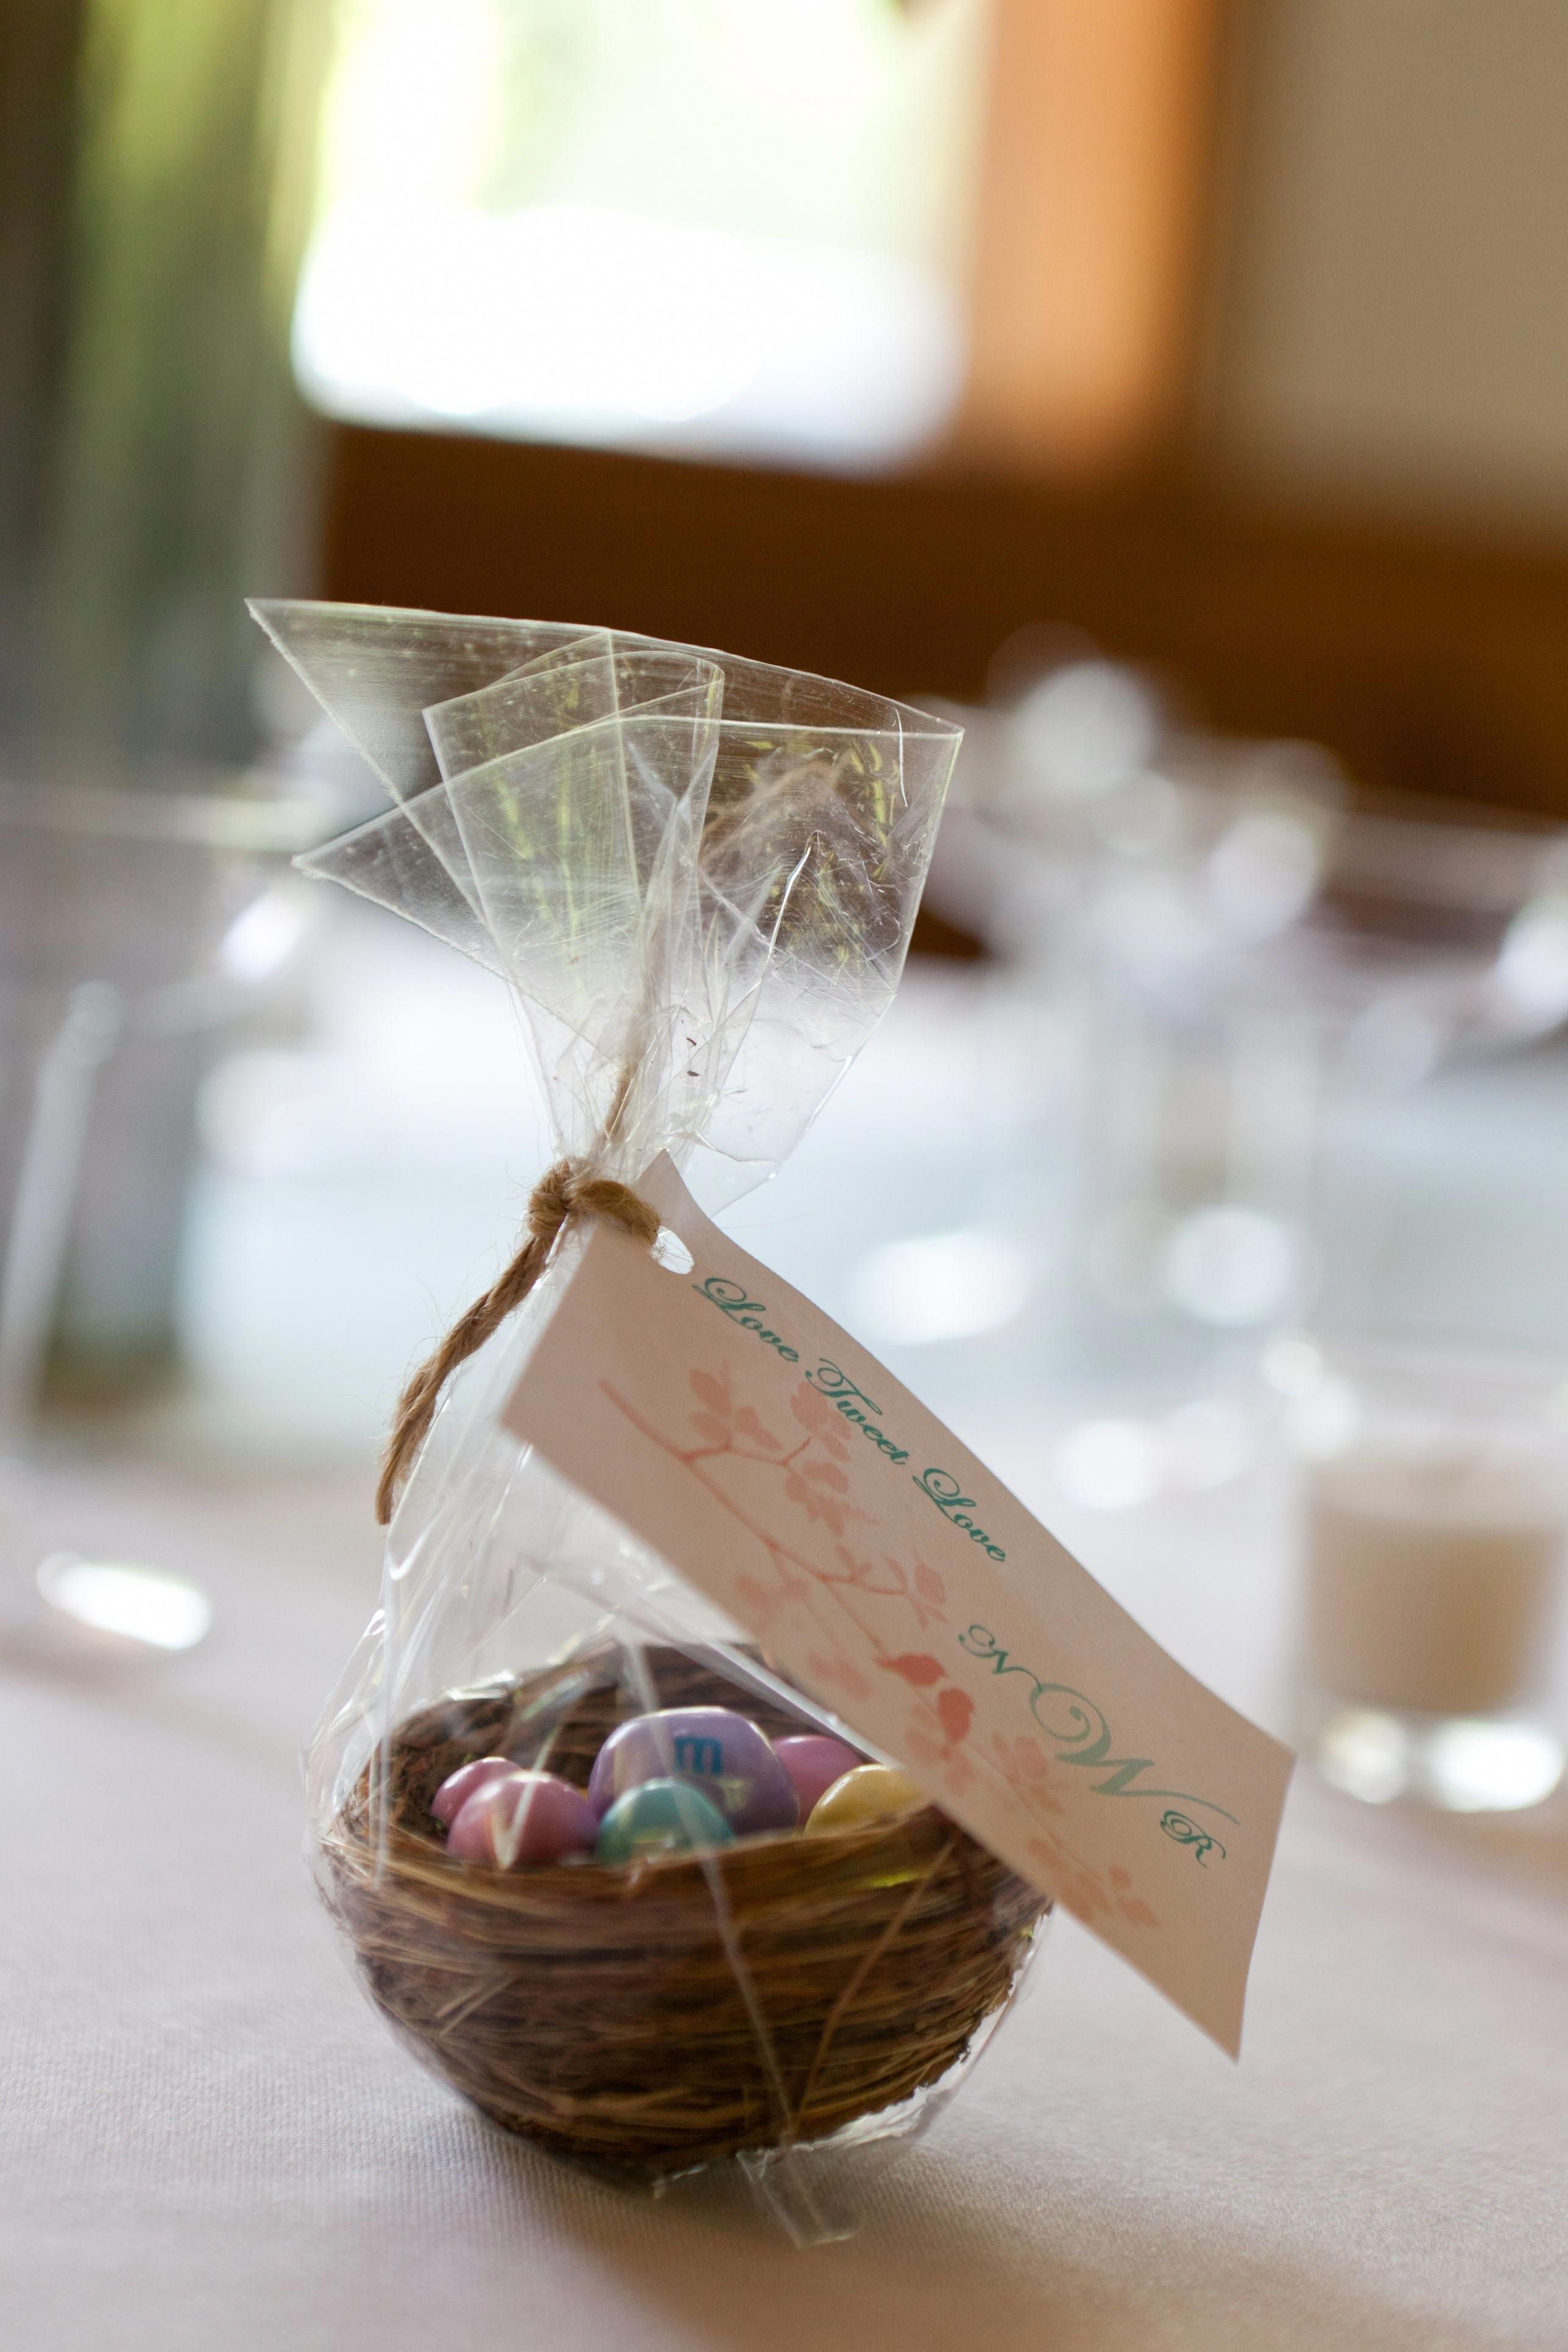 Wedding Favor Sites Creative Favors For Guests Ideas Mens Favours At Weddings 20181110